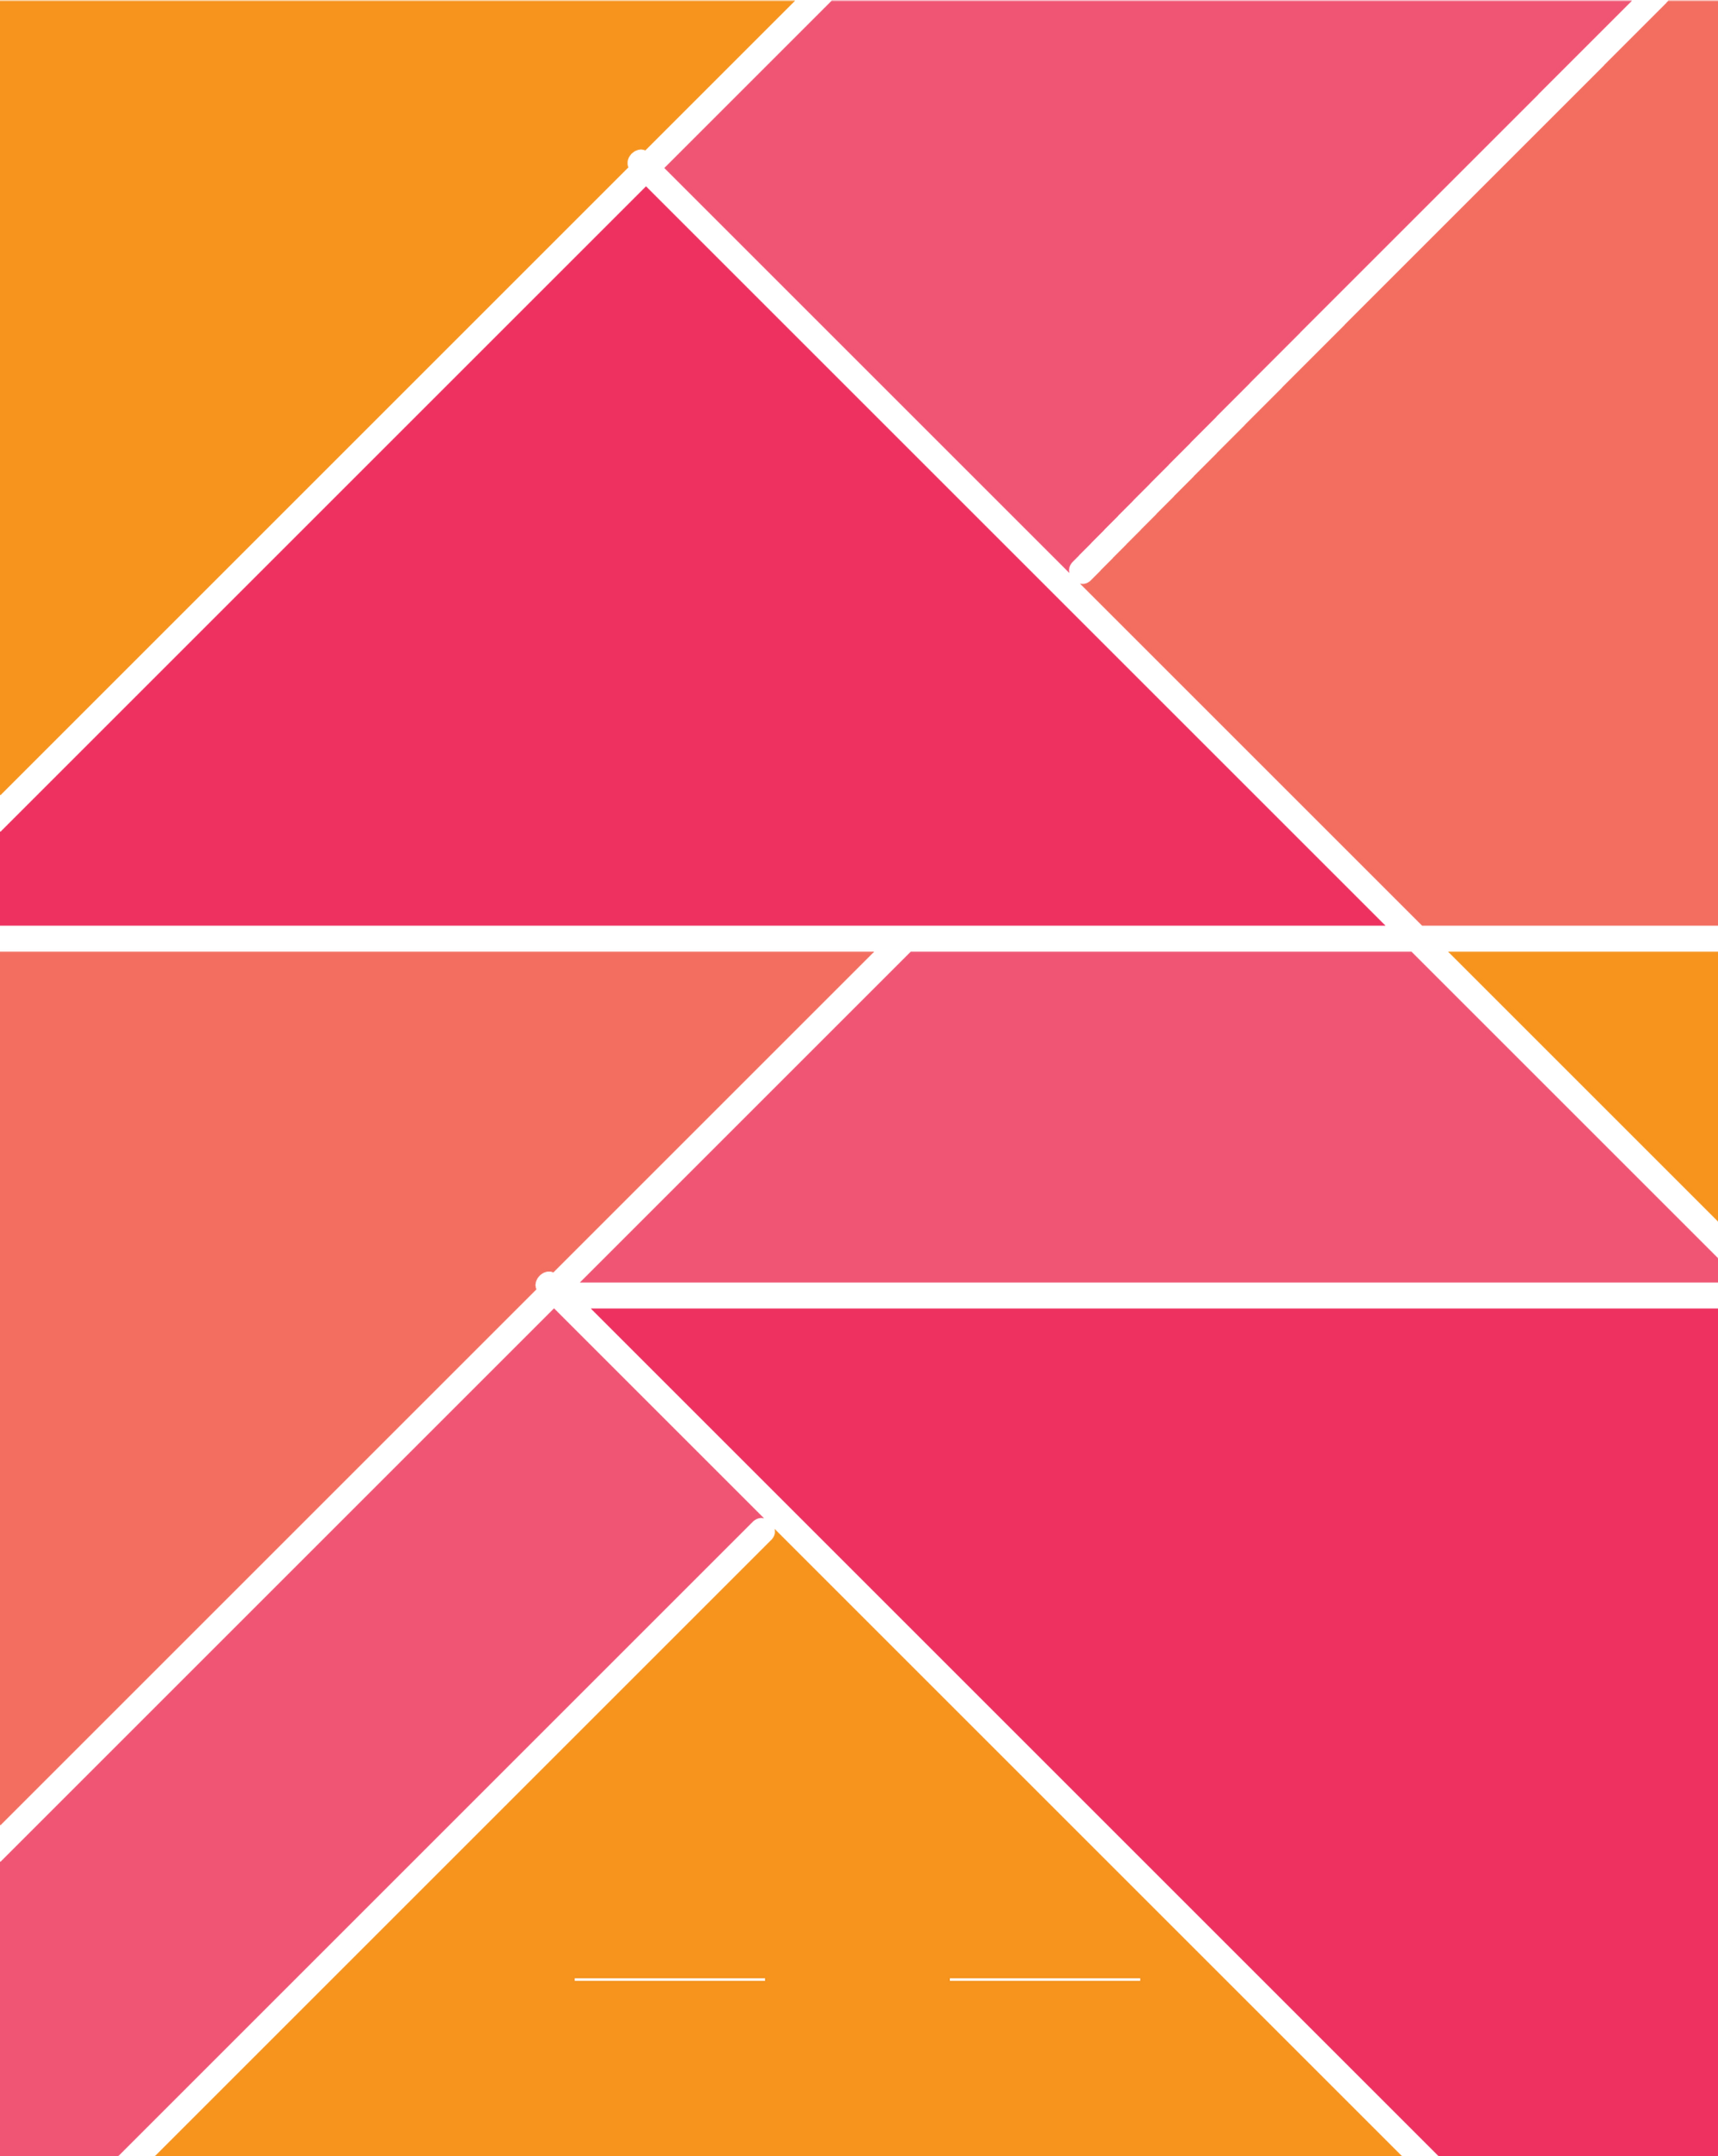 Background ImageArtboard 1_4x-8.png